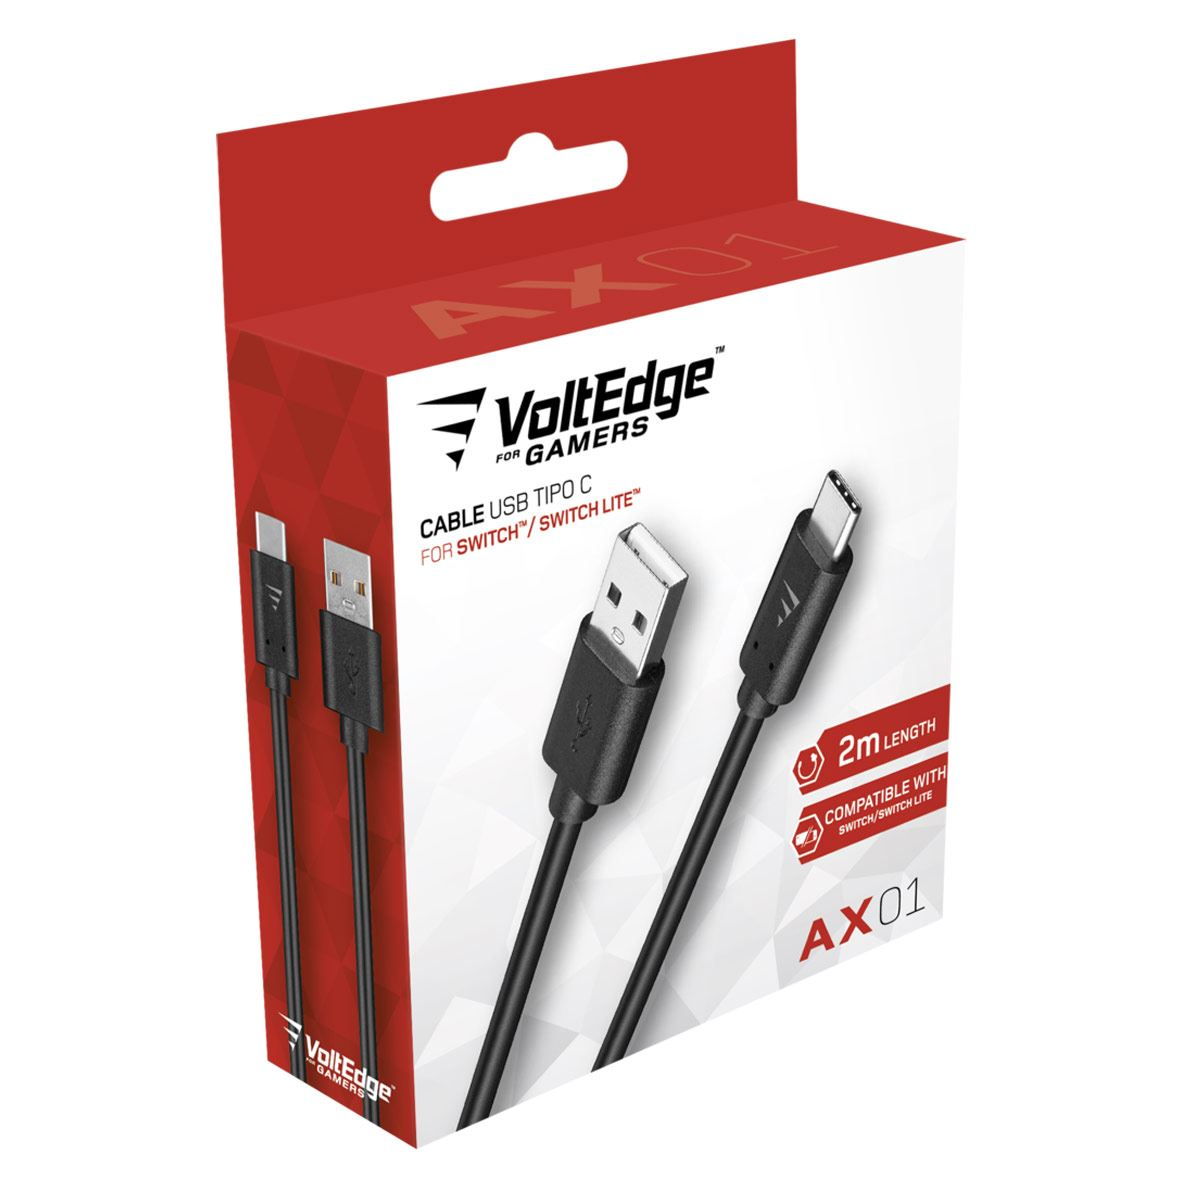 Cable USB VoltEdge Type C AX01 NSW